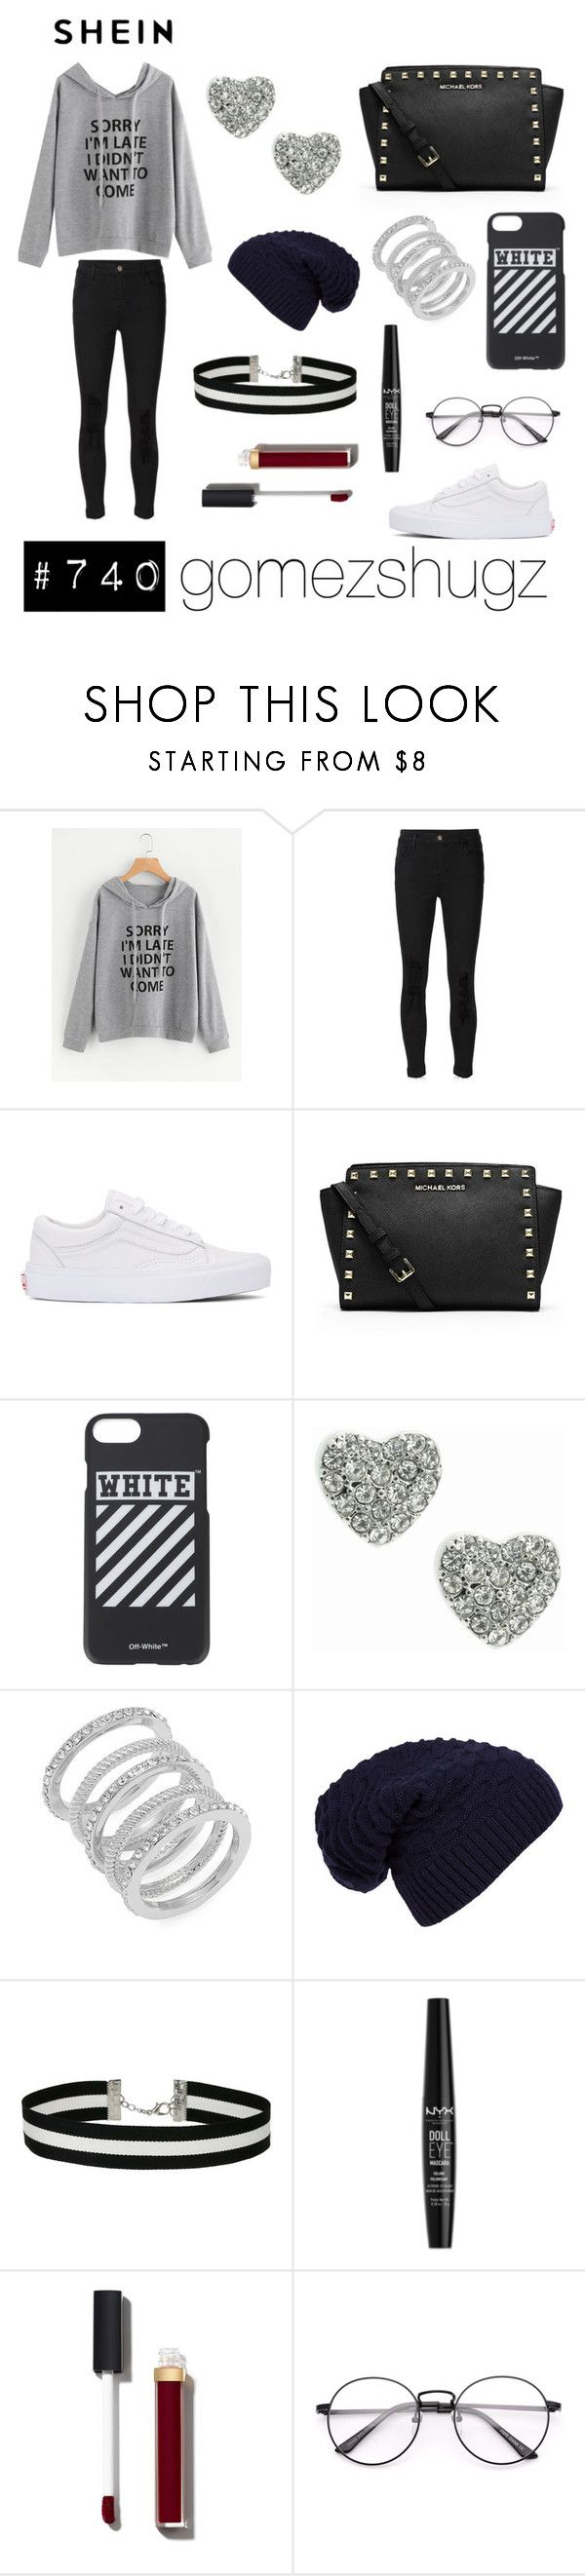 """""""gray, grey, black, white, silver"""" by gomezshugz ❤ liked on Polyvore featuring J Brand, Vans, MICHAEL Michael Kors, Off-White, Lipsy, Cole Haan, WithChic, Miss Selfridge, NYX and Chanel"""